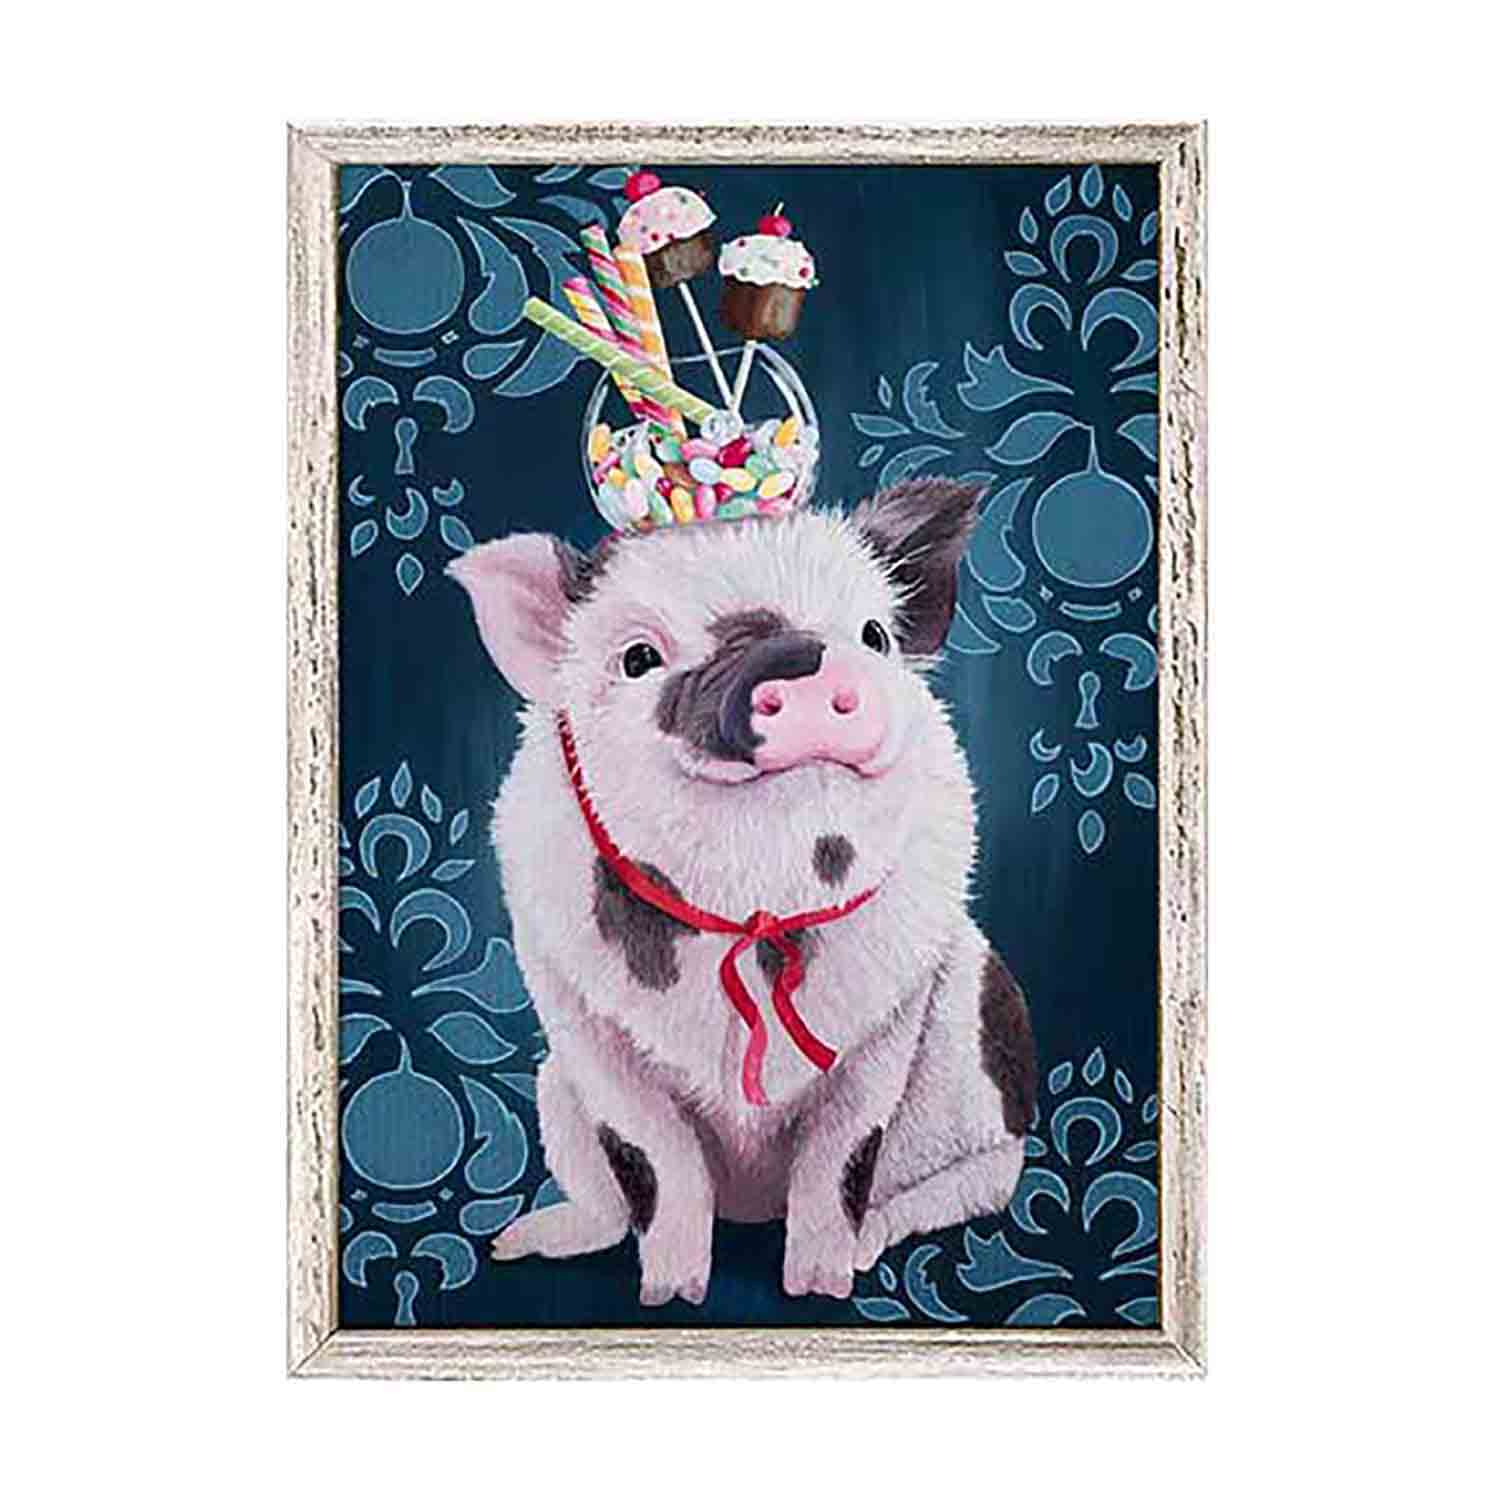 William Has A Sweet Tooth Mini Framed Canvas